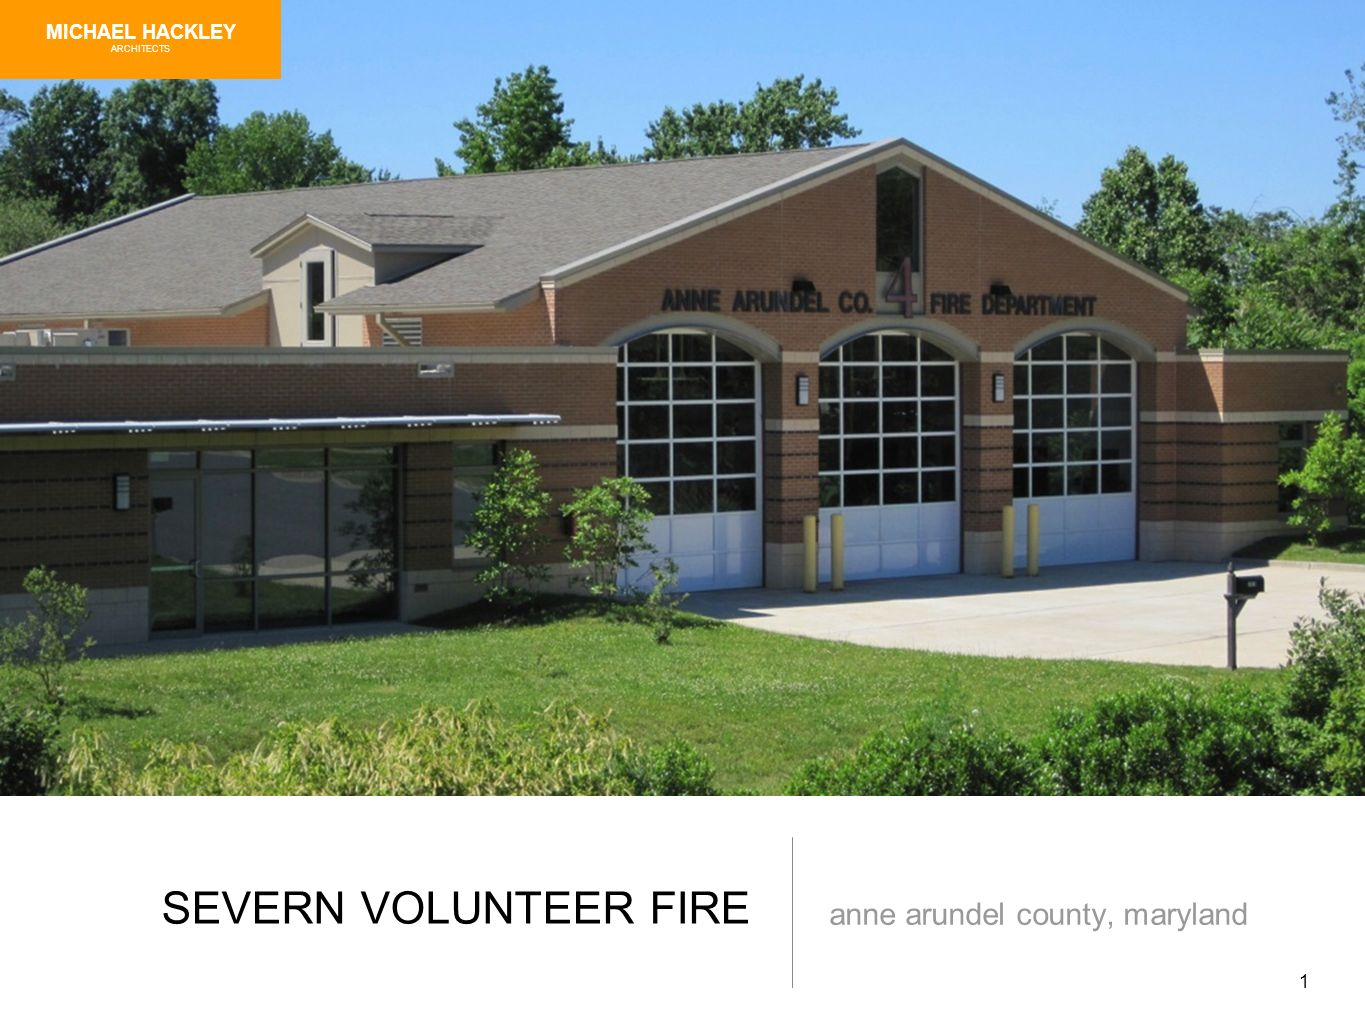 1 SEVERN VOLUNTEER FIRE anne arundel county, maryland MICHAEL HACKLEY ARCHITECTS